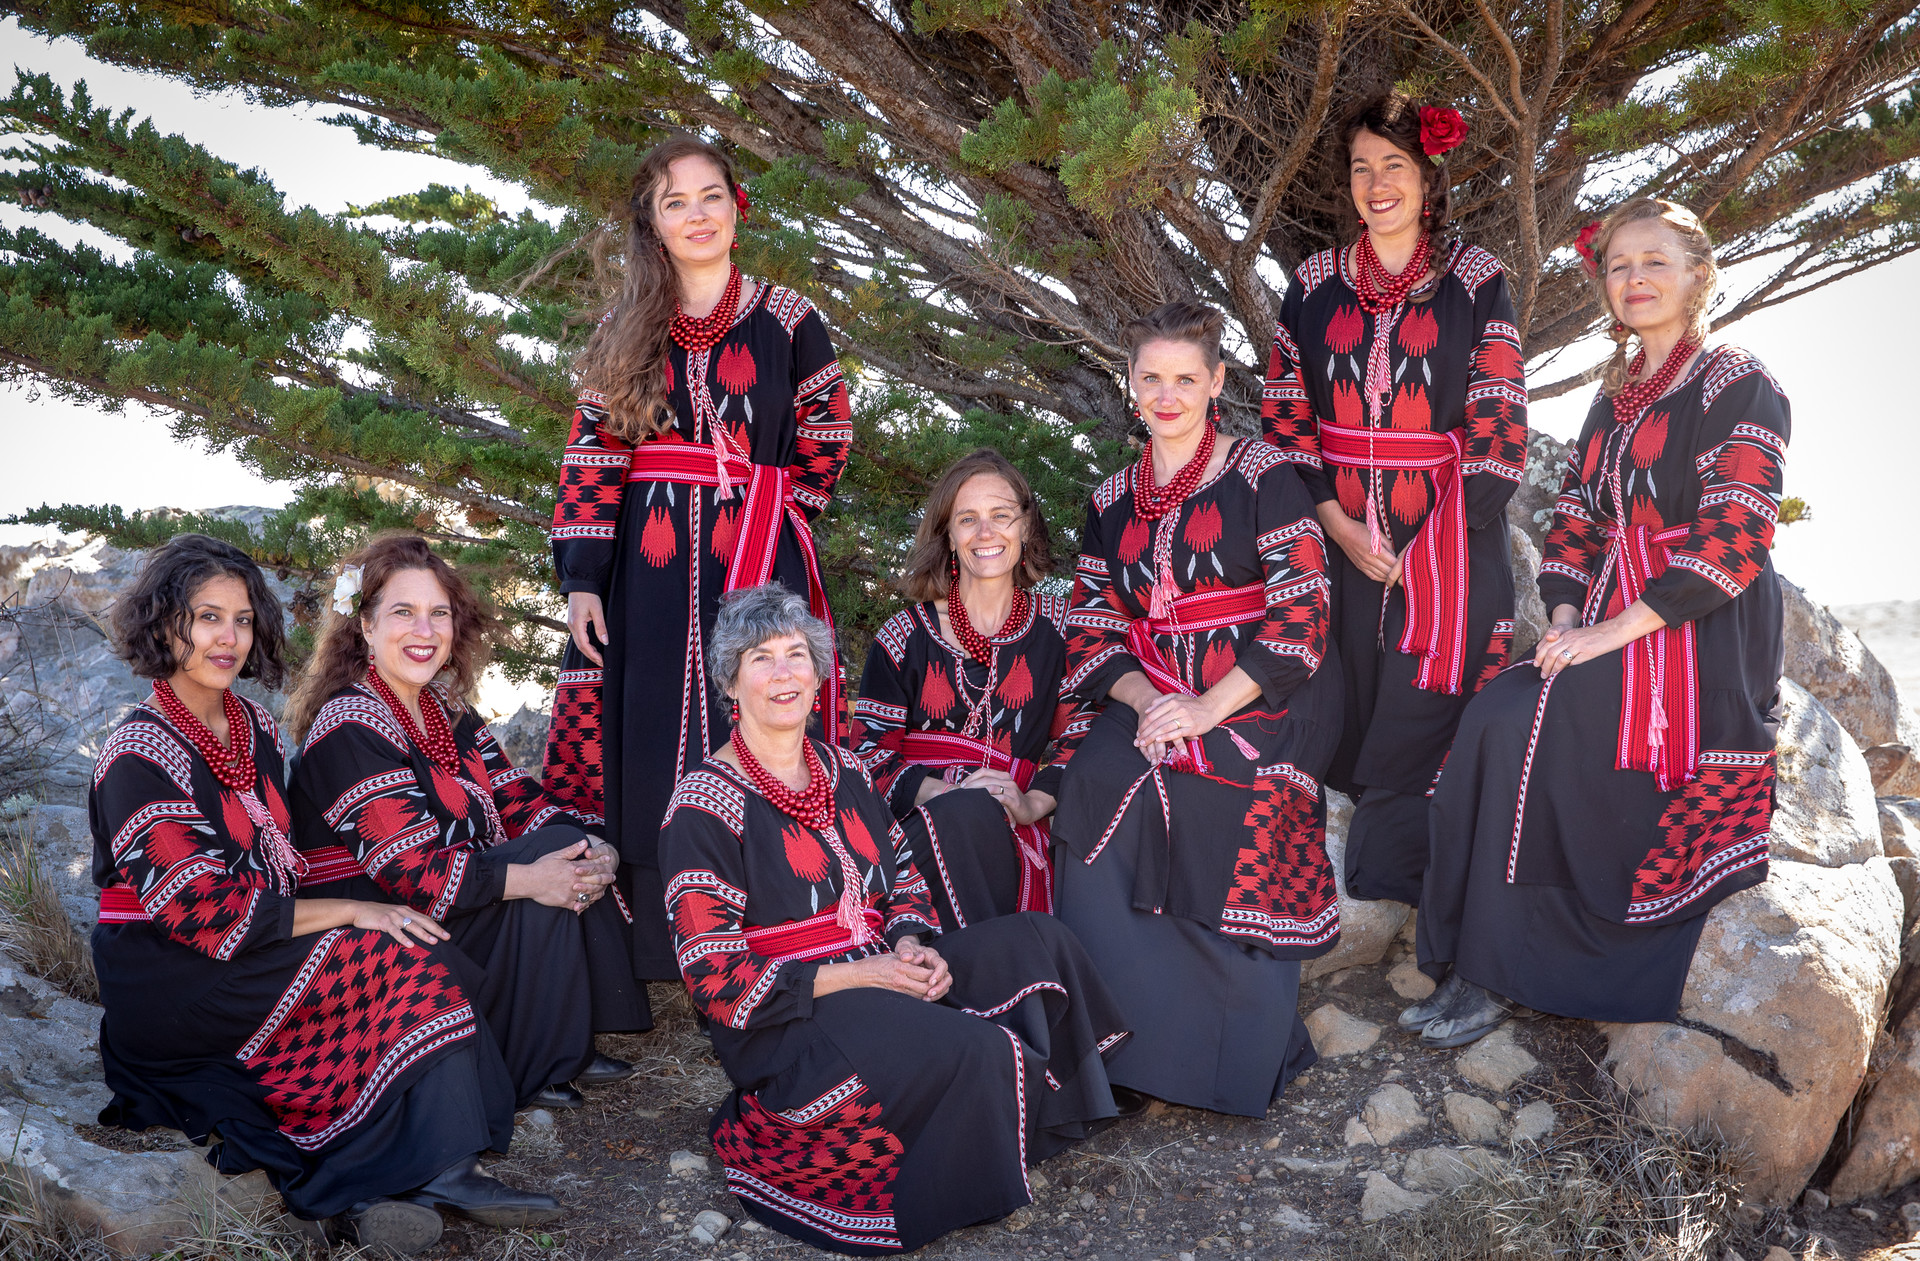 Bay Area institution Kitka is celebrating its 40th year performing traditional folk music from Europe and Eurasia, as well as introducing folk musicians from those regions to American audiences.